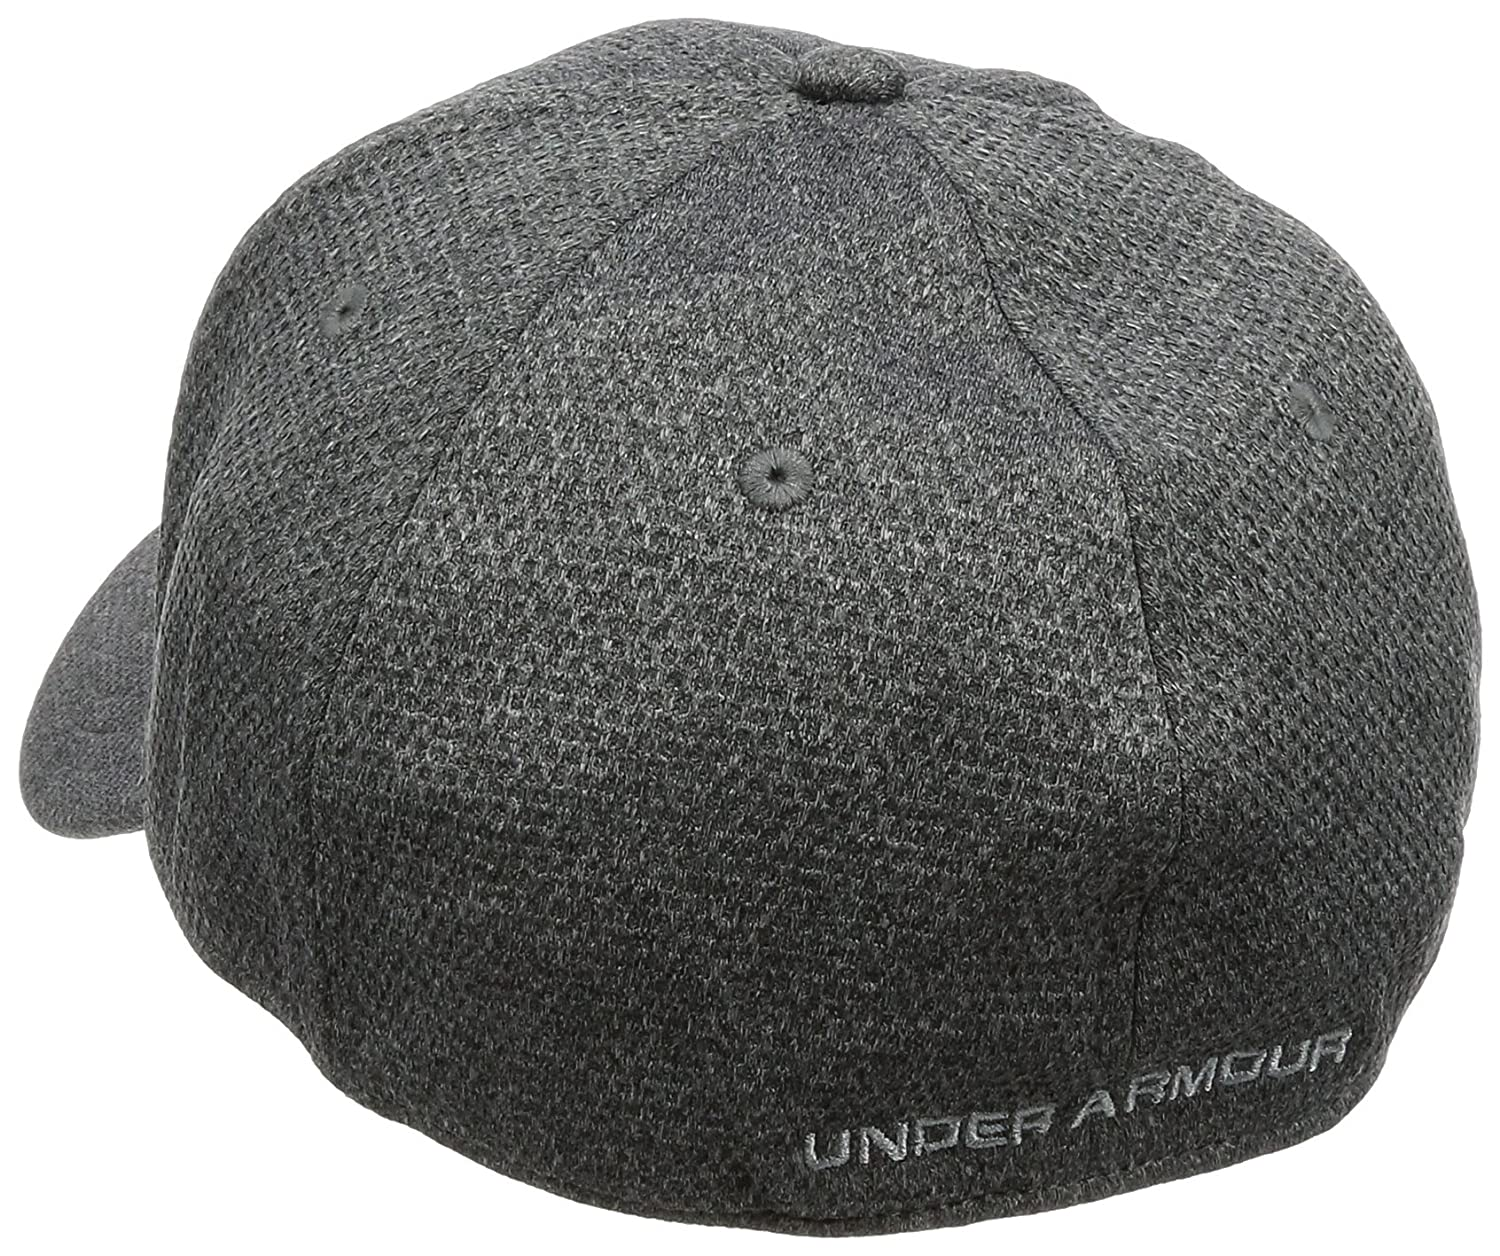 Under Armour Mens Heather Blitzing Cap - Gorra de béisbol Hombre ...